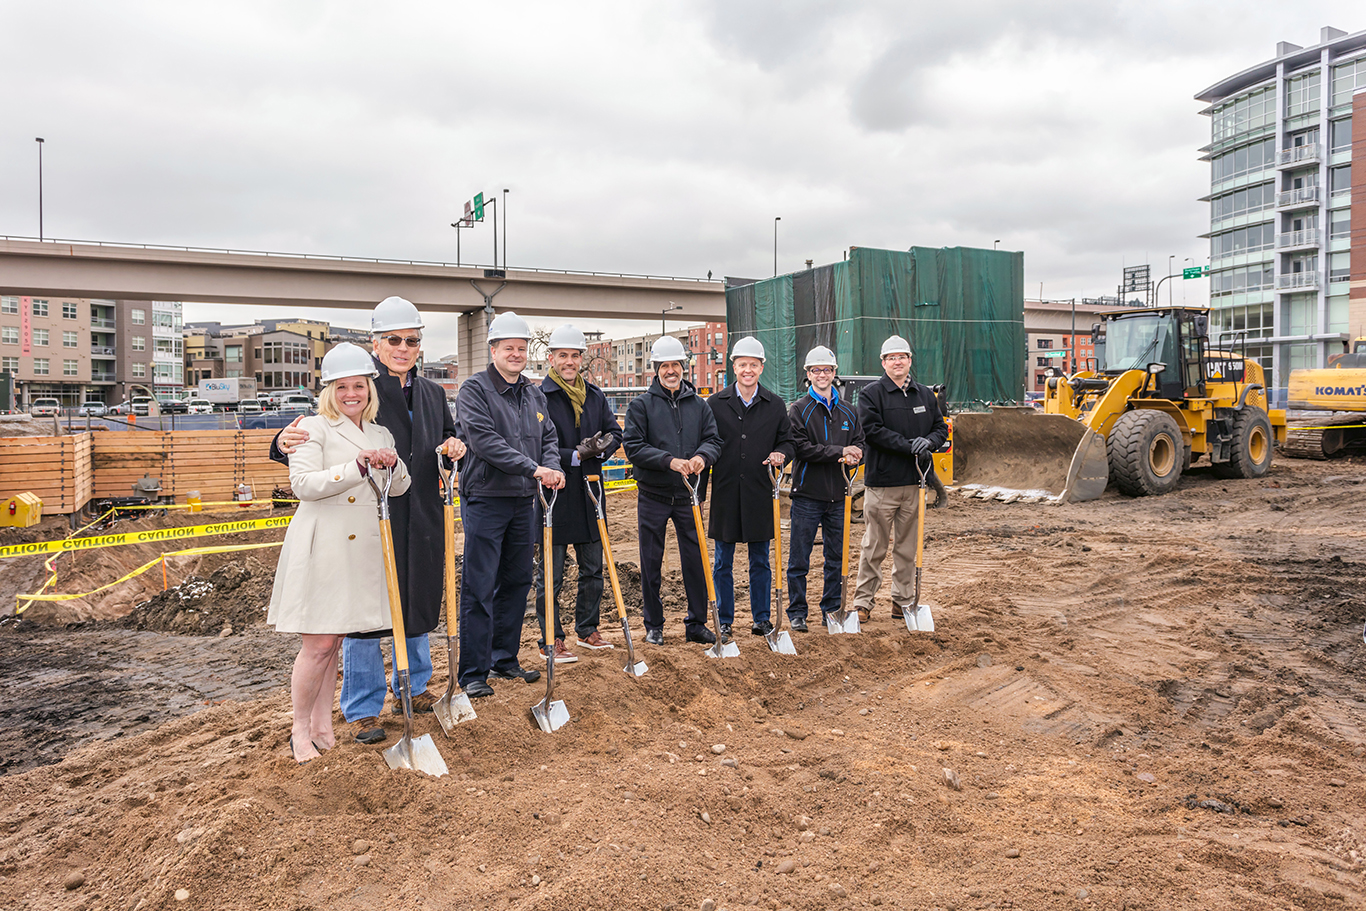 Event Round Up: Hilton Garden Inn Denver Union Station Breaks Ground